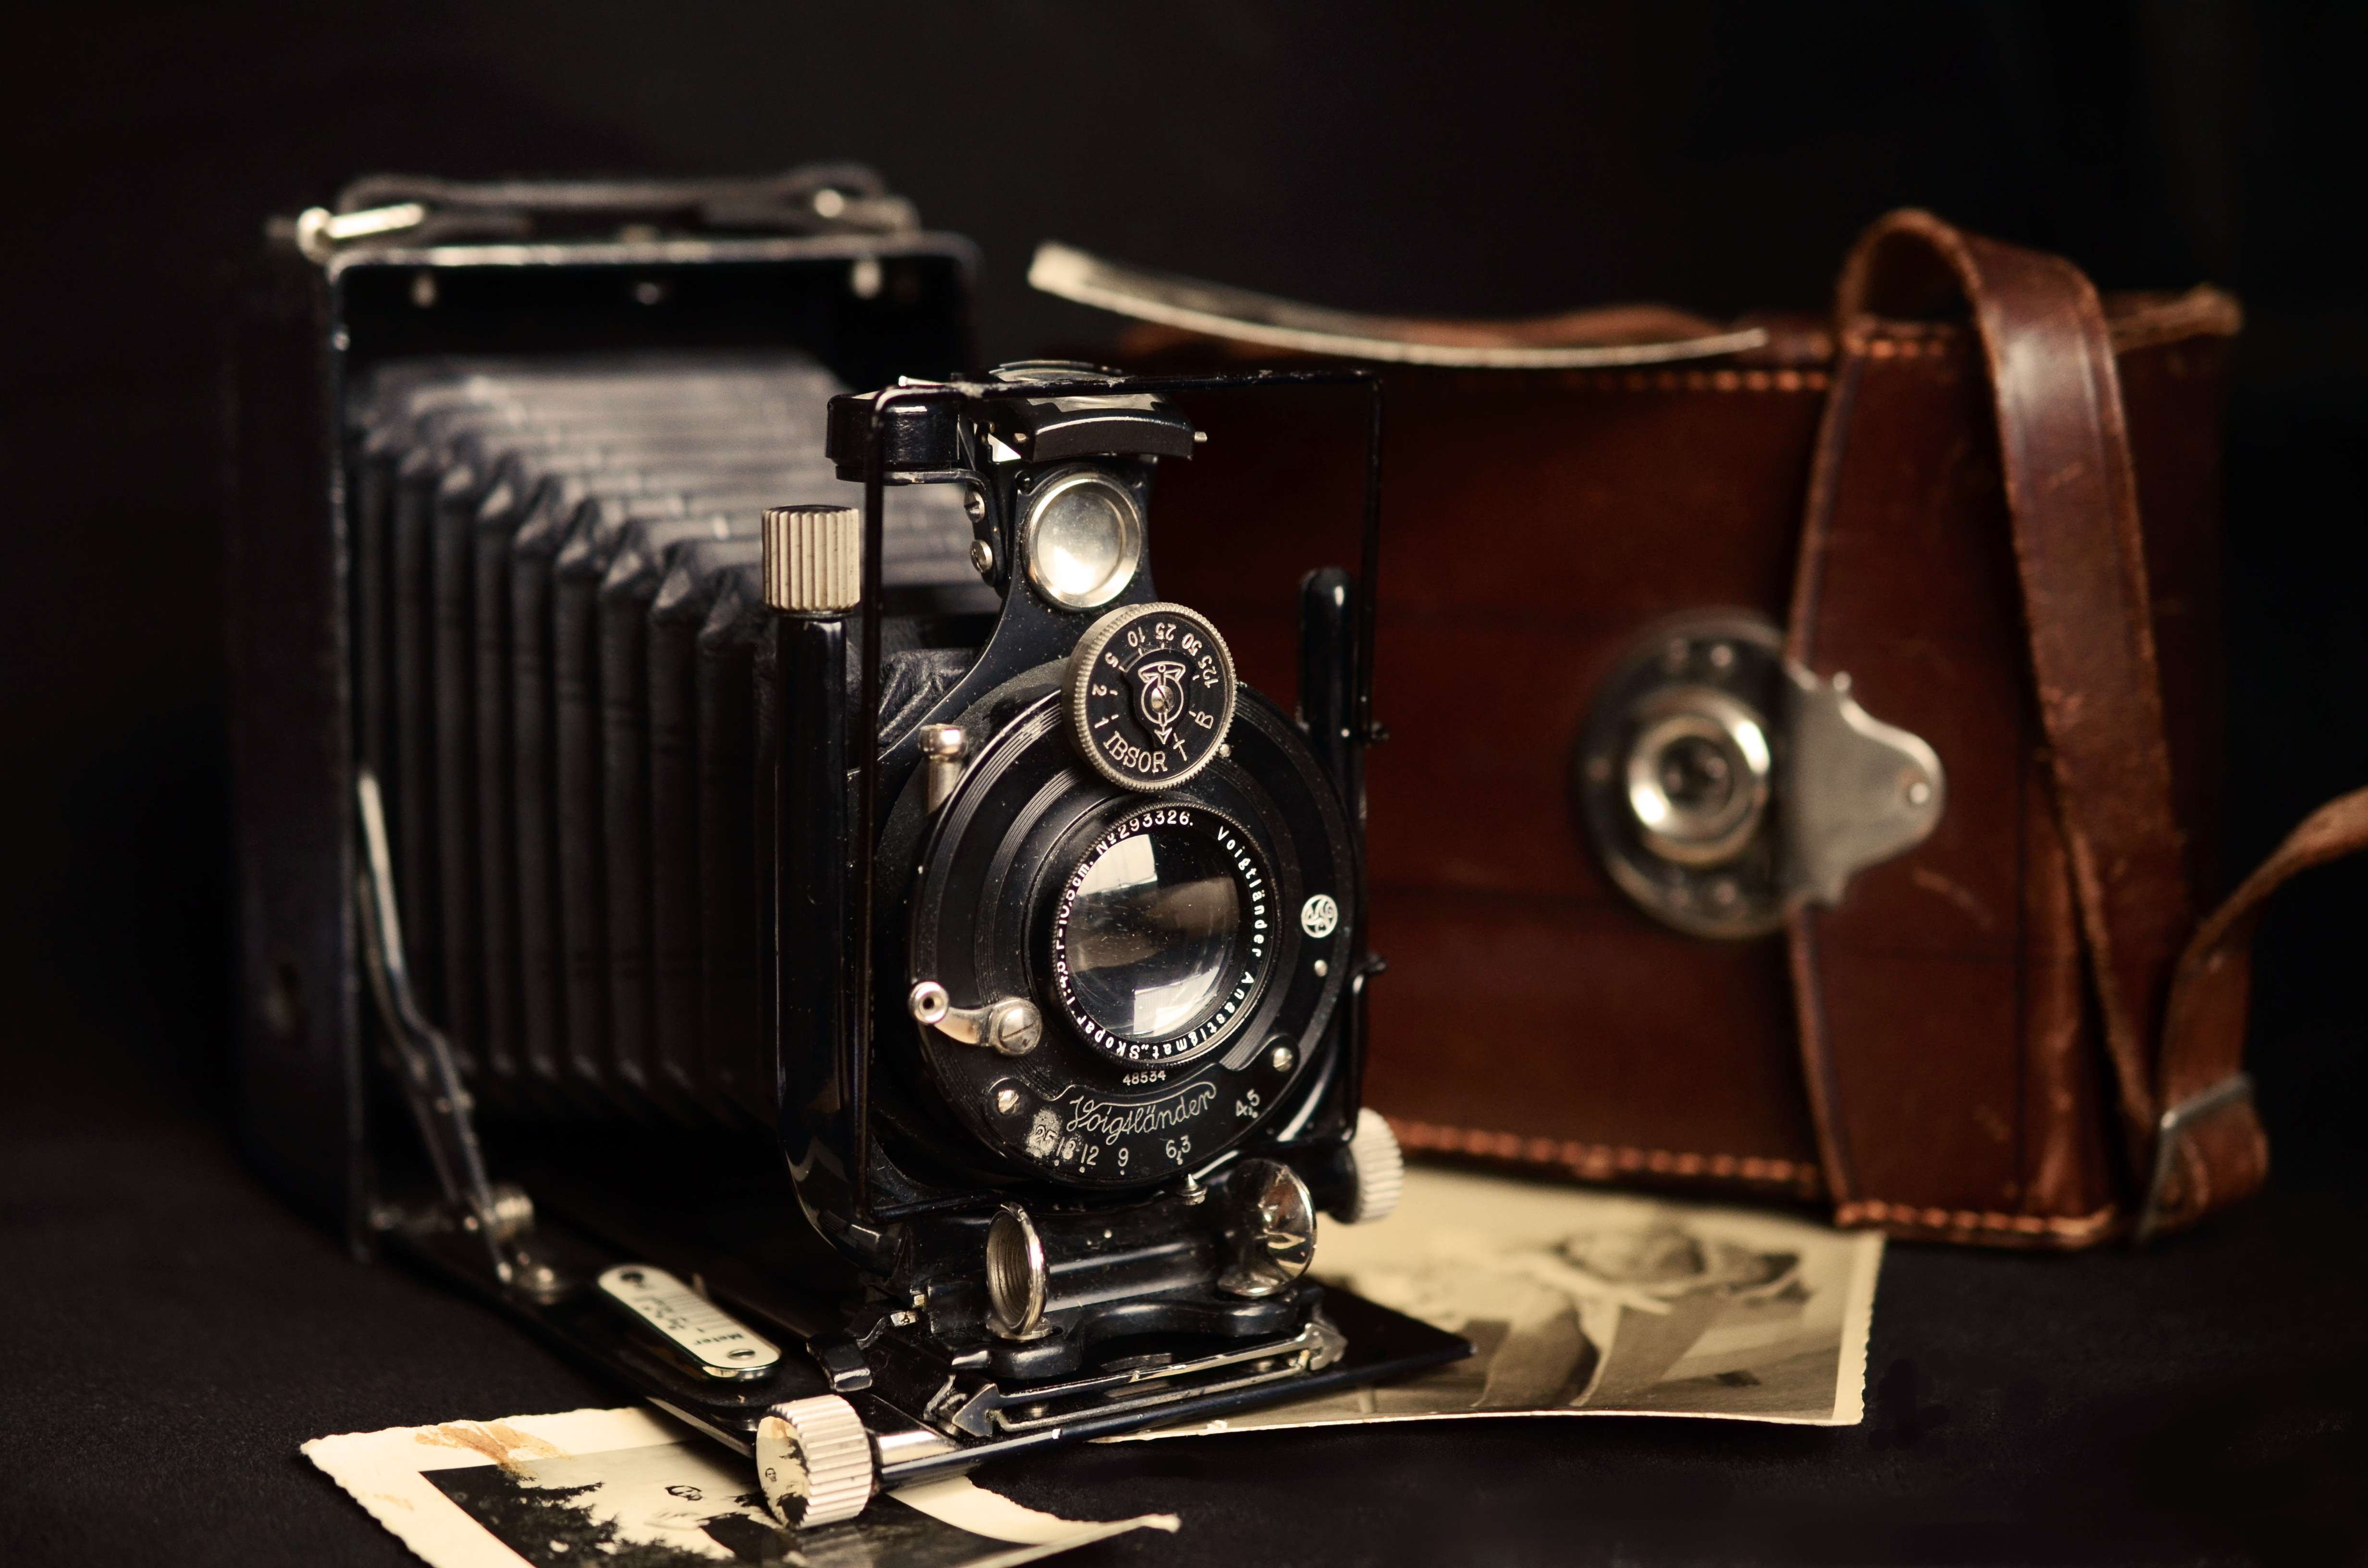 Black Classic Camera Near Brown Leather Bag · Free Stock Photo